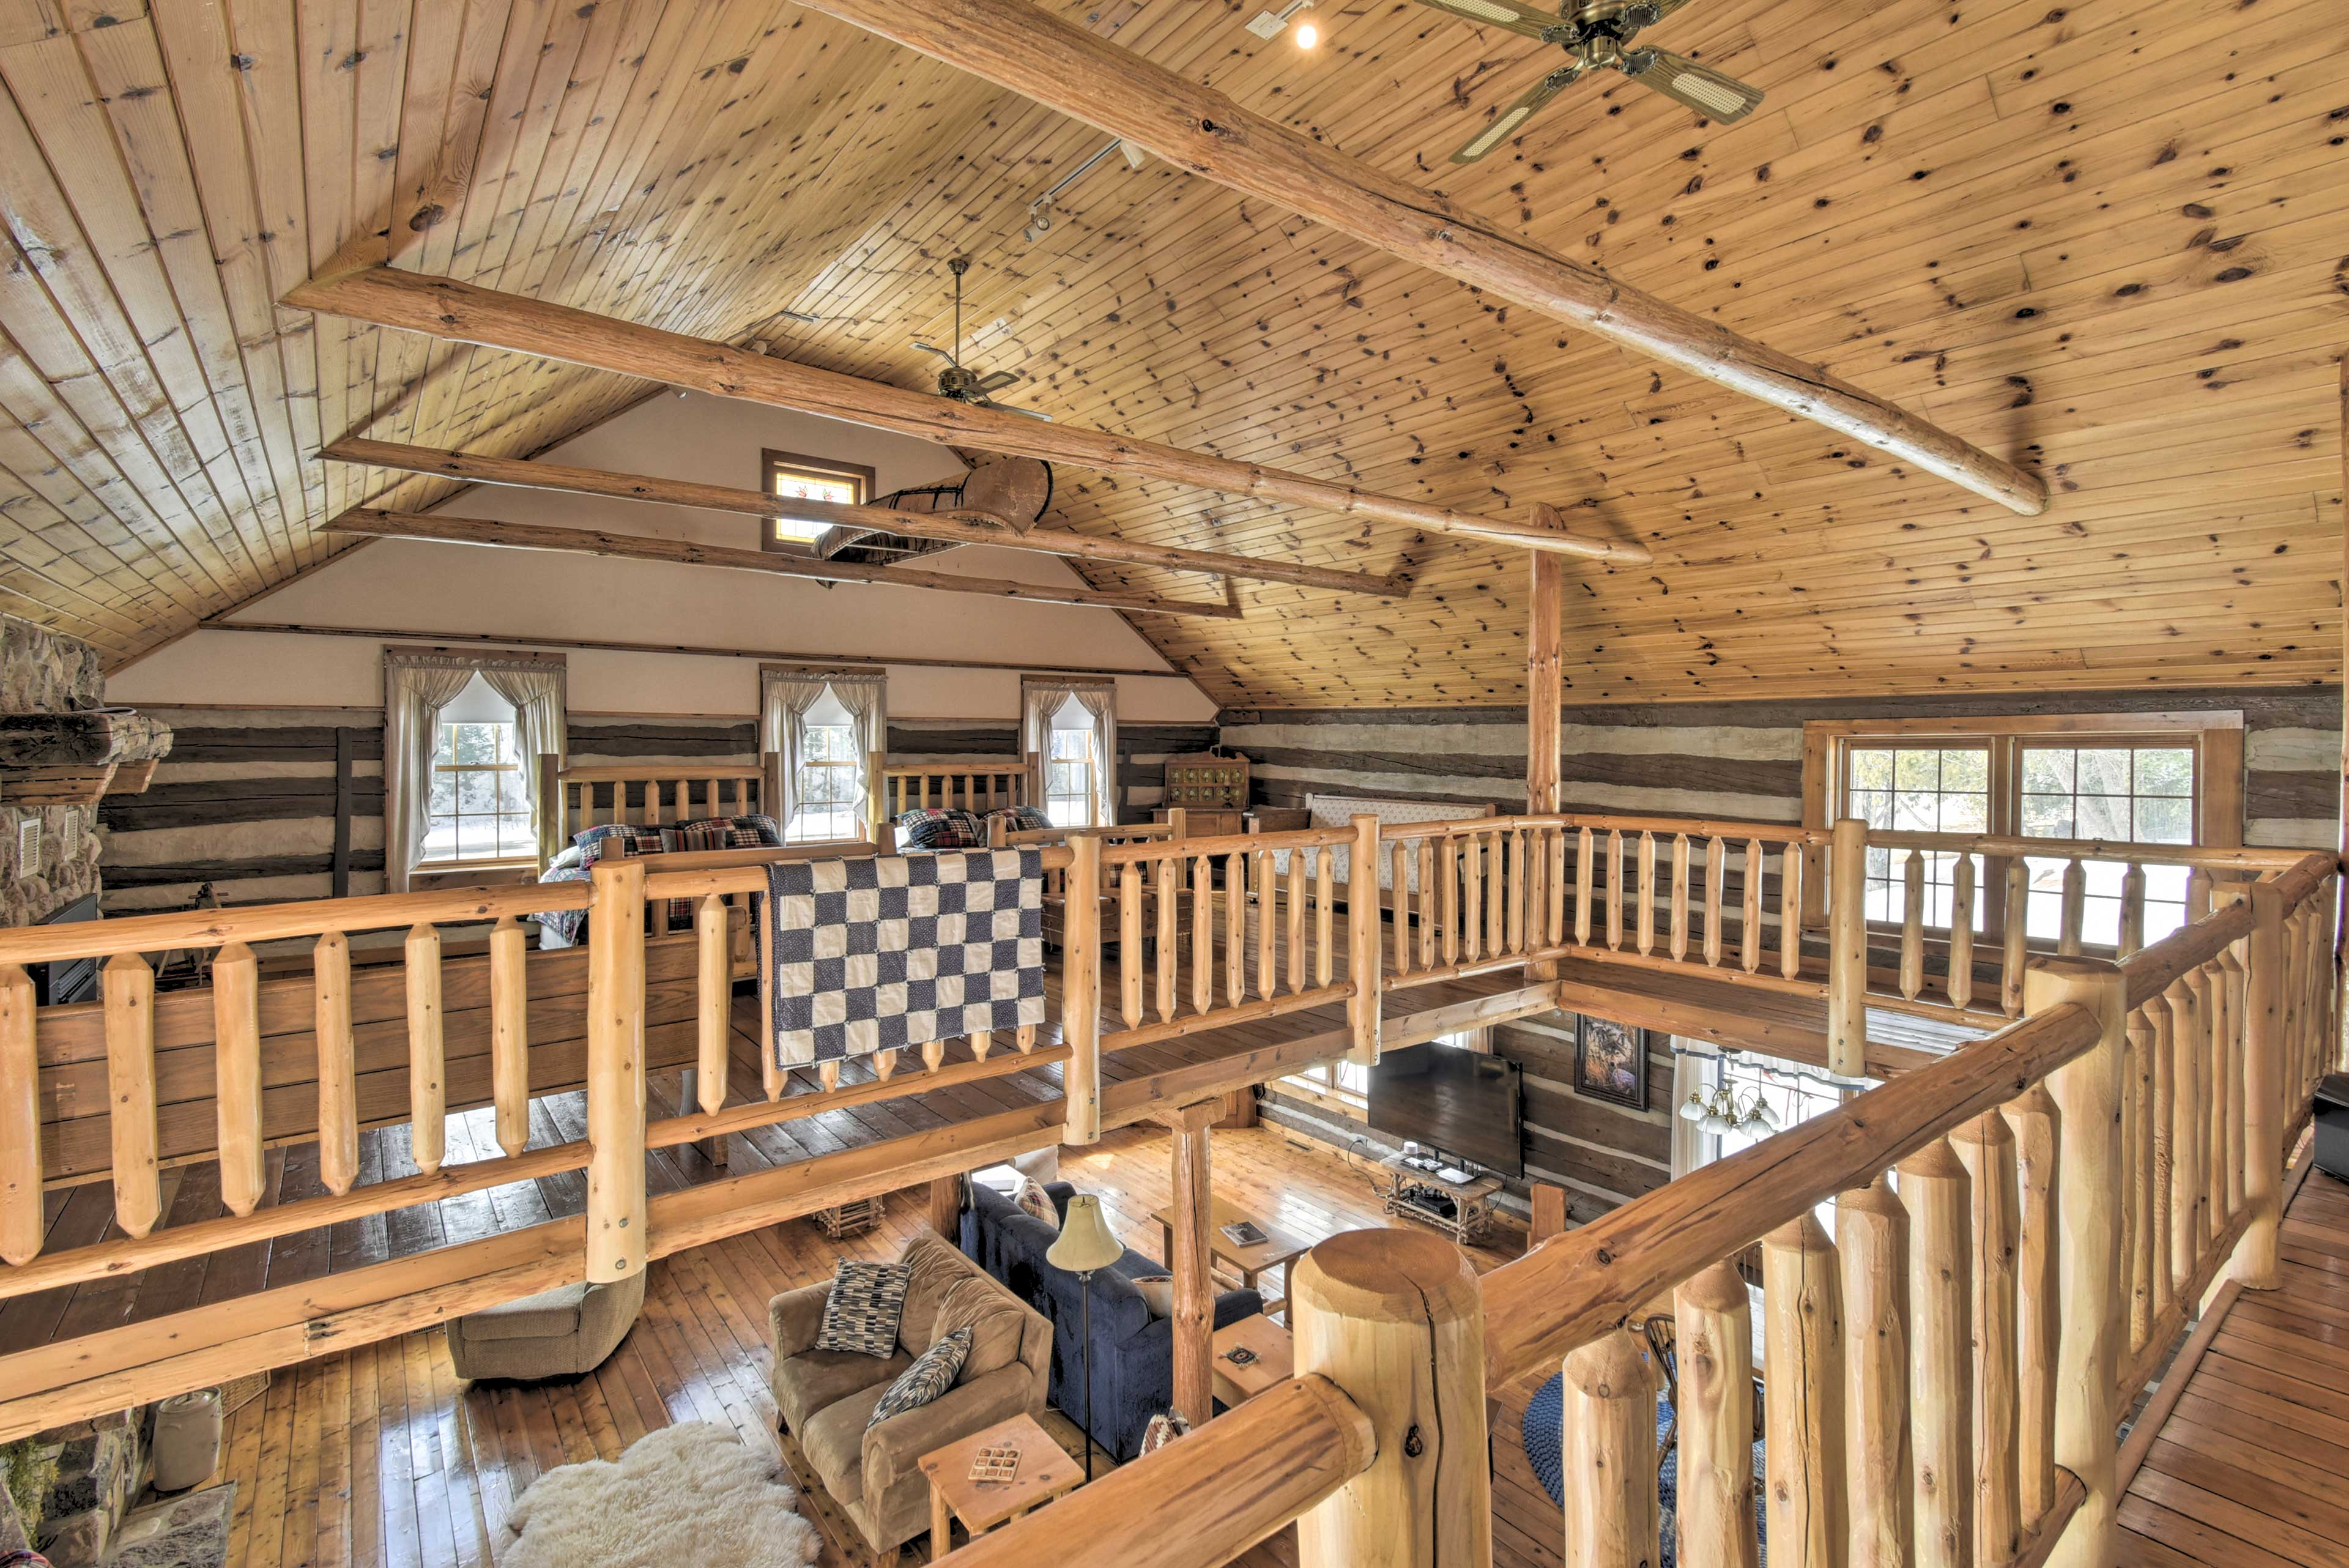 Look down below at the spacious cabin from the open loft!